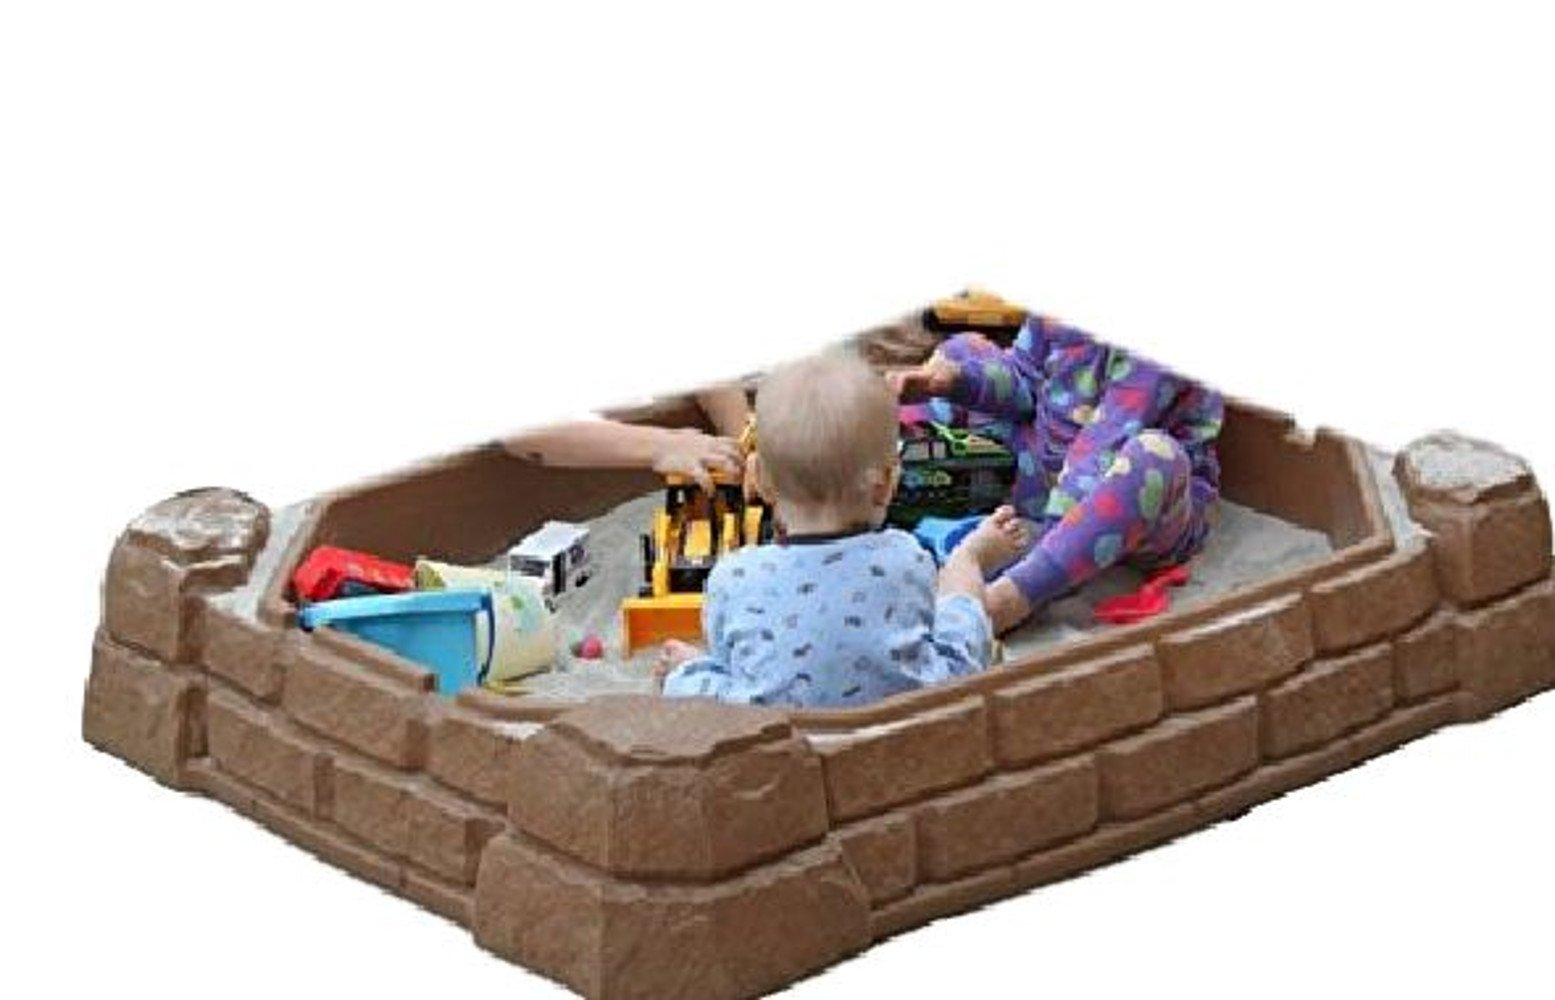 ATS Sandbox with Lid Toys for Kids Outdoor Sandbox Large Plastic Sandbox with Cover Backyard Toddler Children & eBook by AllTim3Shopping